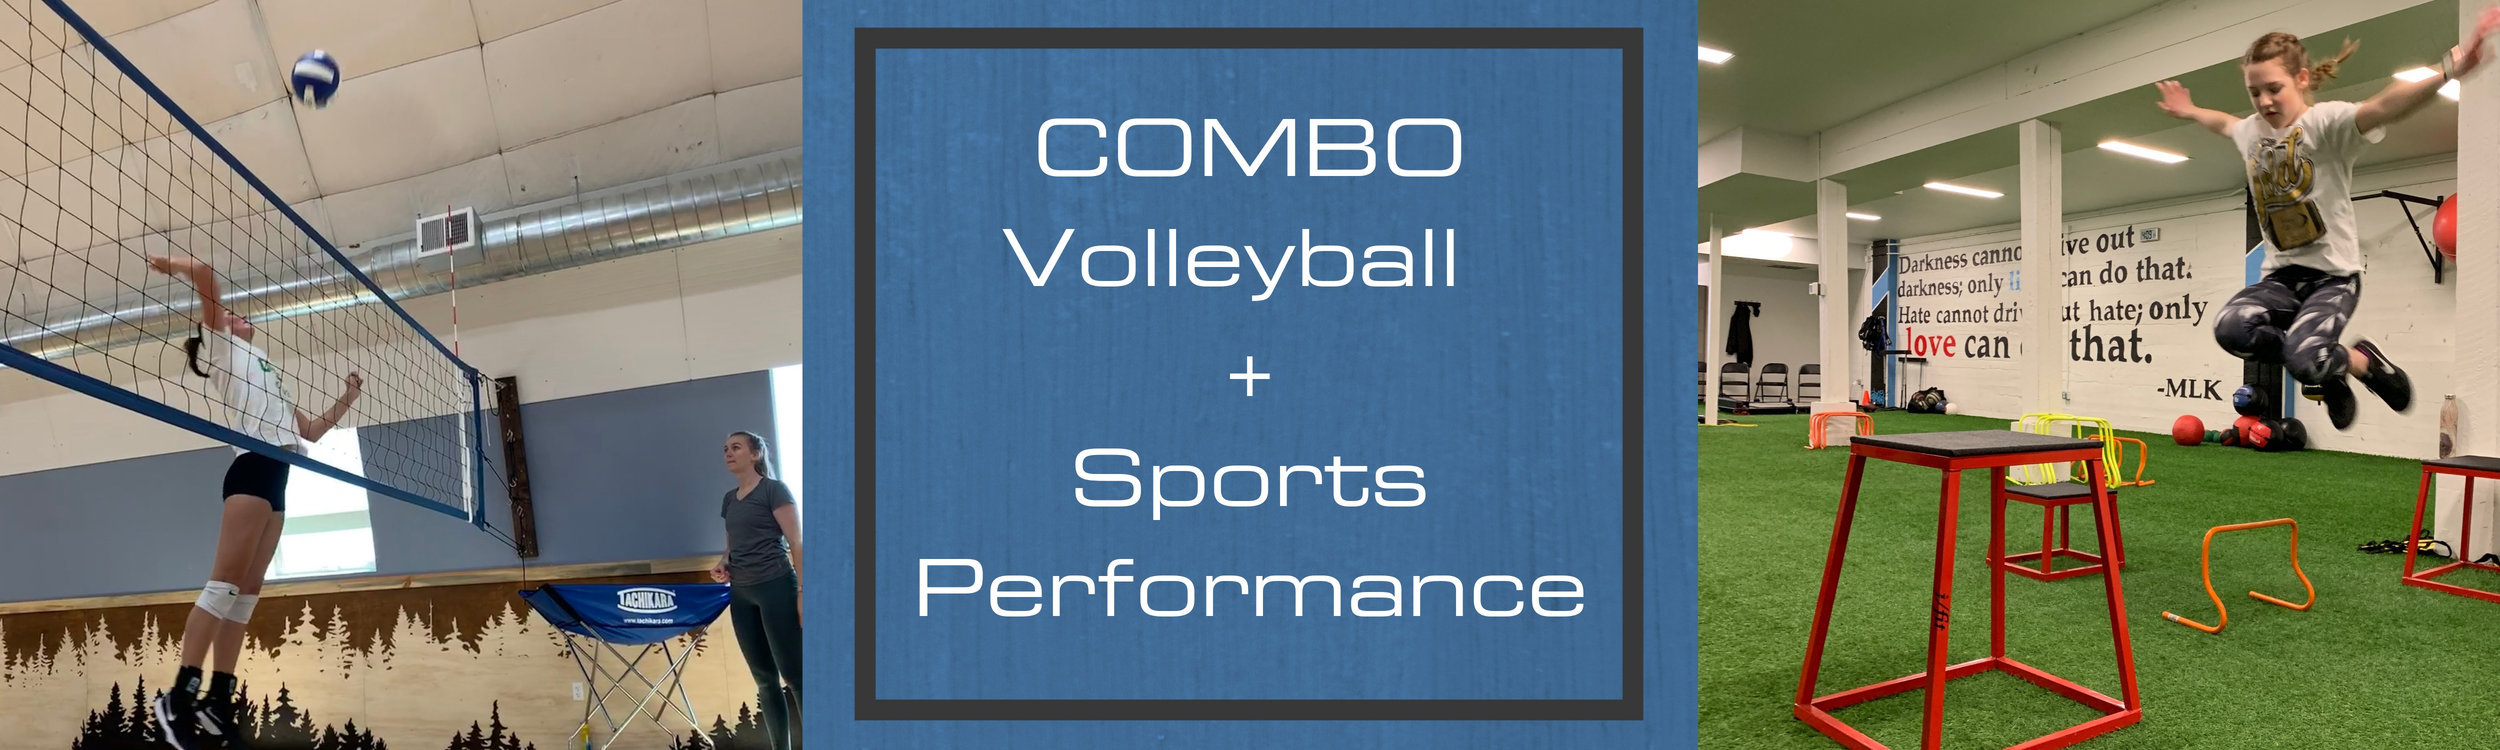 Website Pricing Banner- Combo vball + performance.jpg